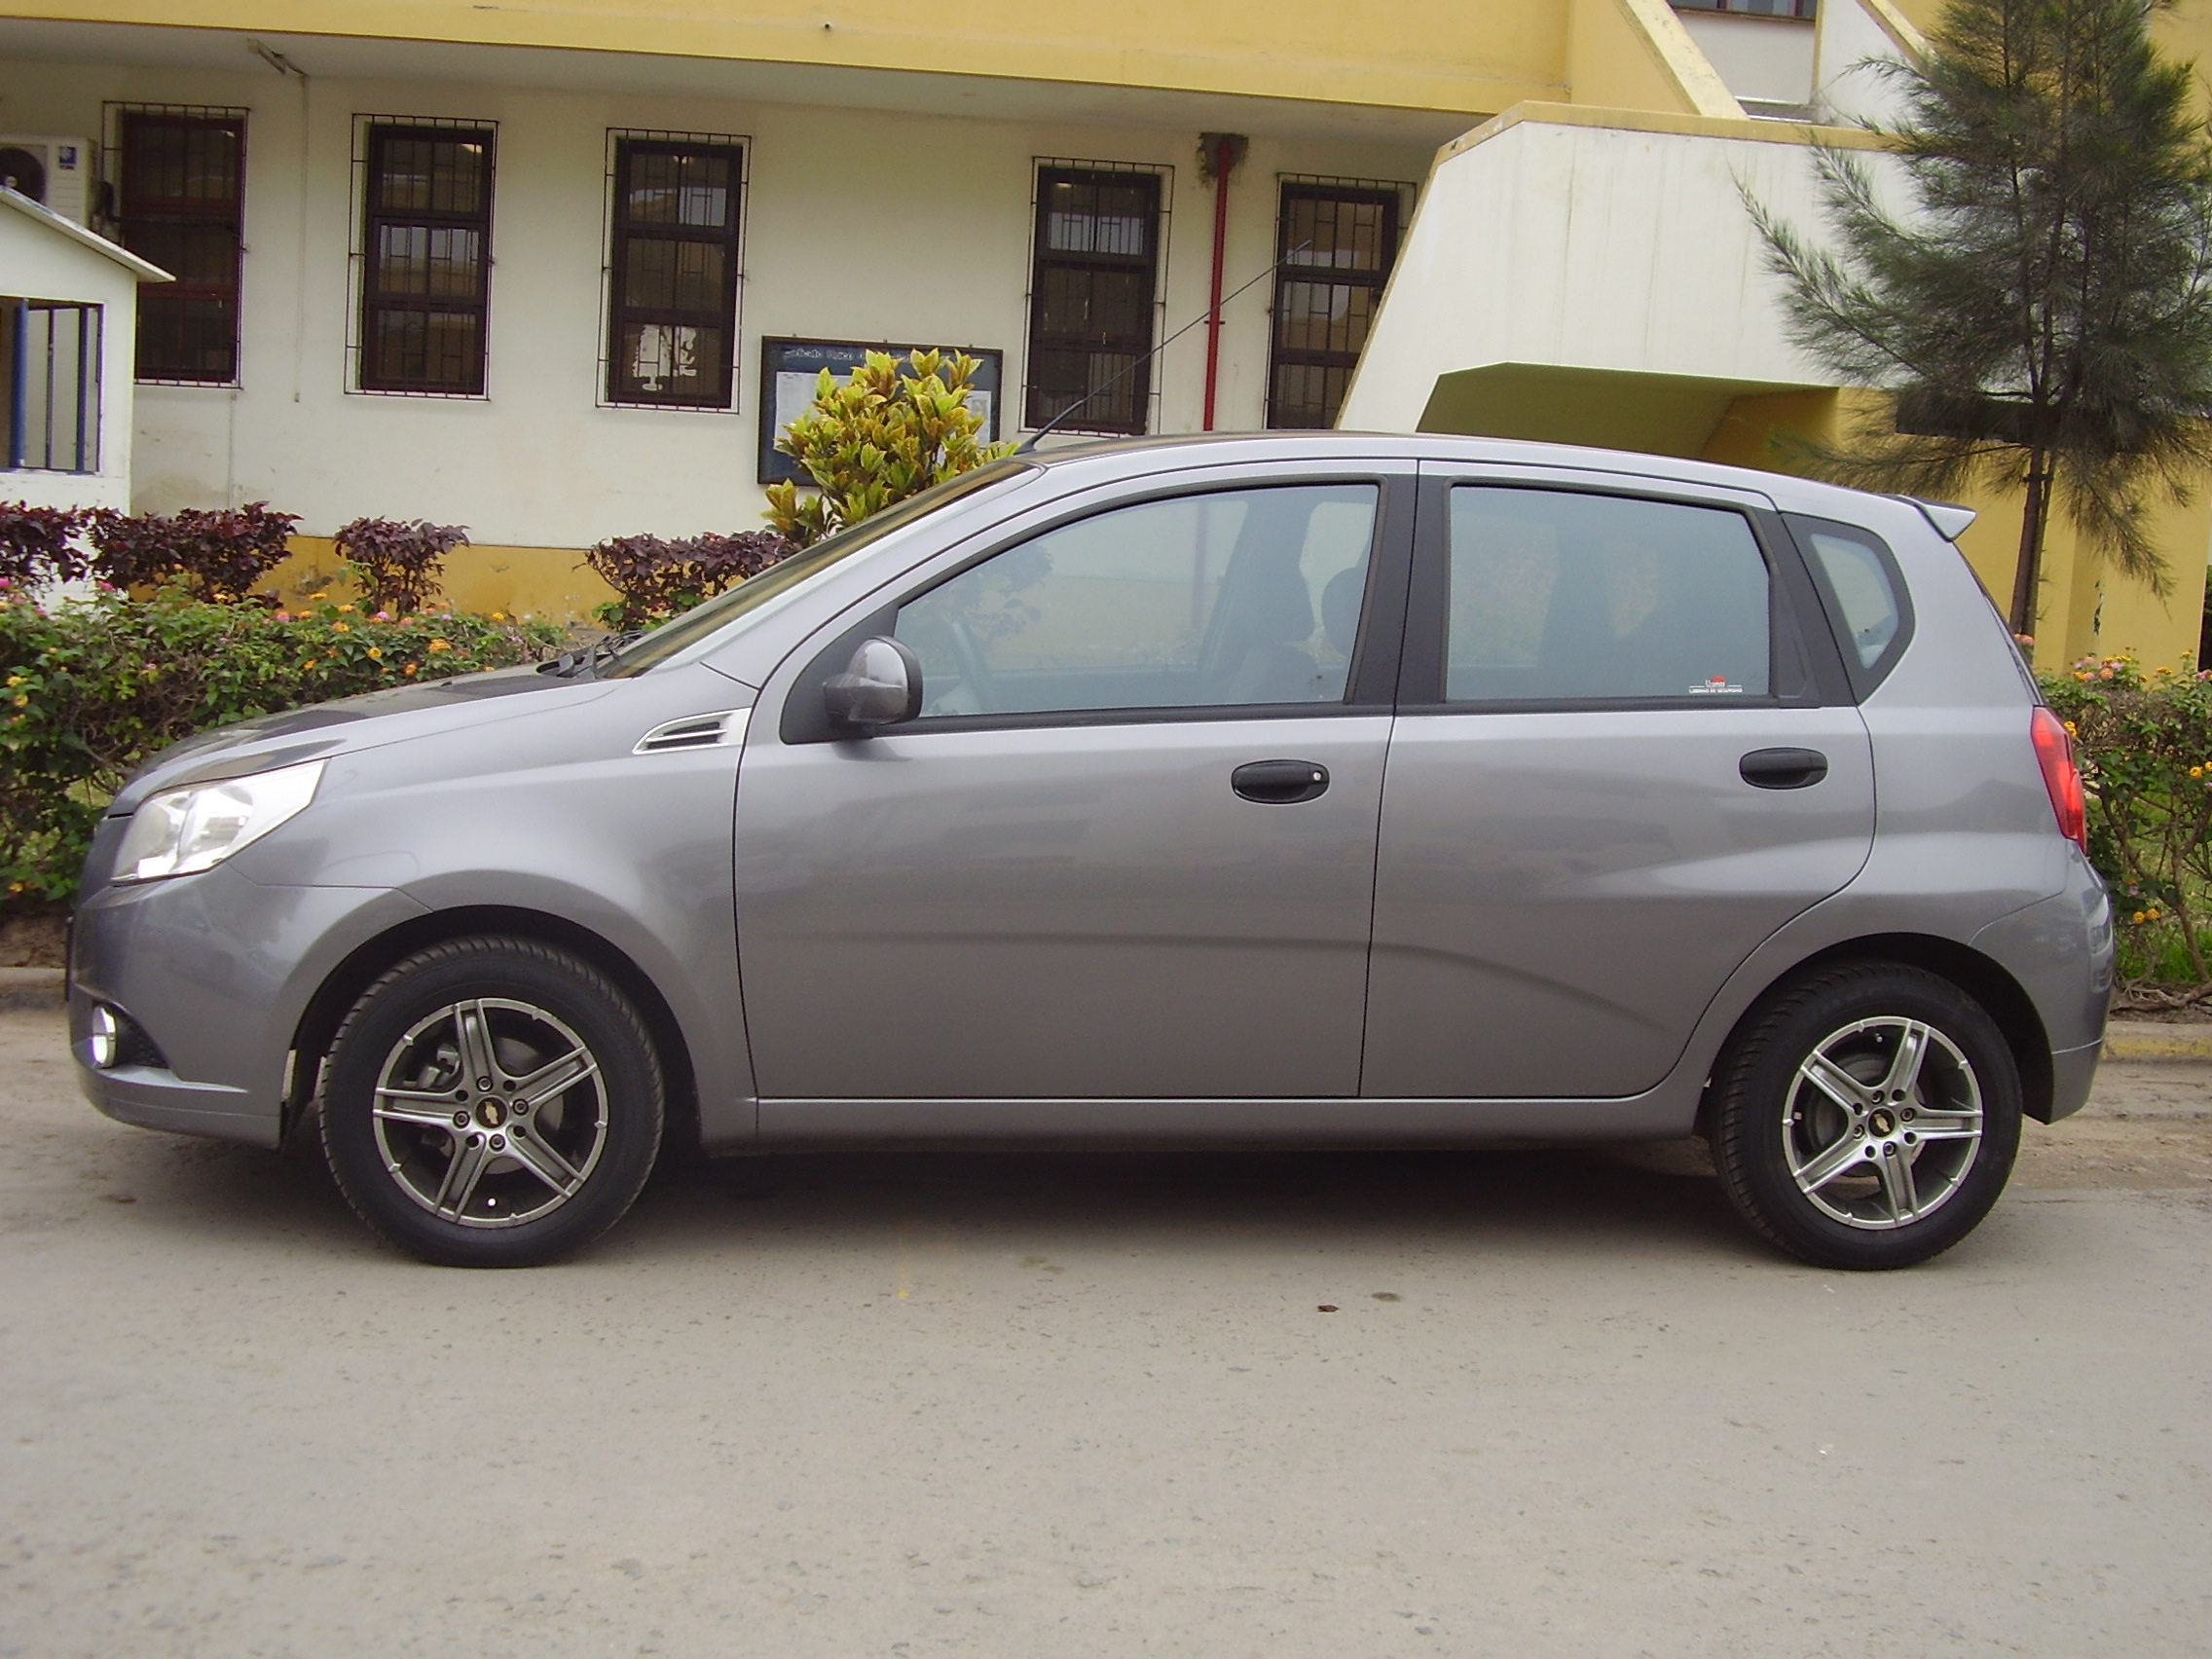 2010 chevrolet aveo ii hatchback pictures information and specs auto. Black Bedroom Furniture Sets. Home Design Ideas